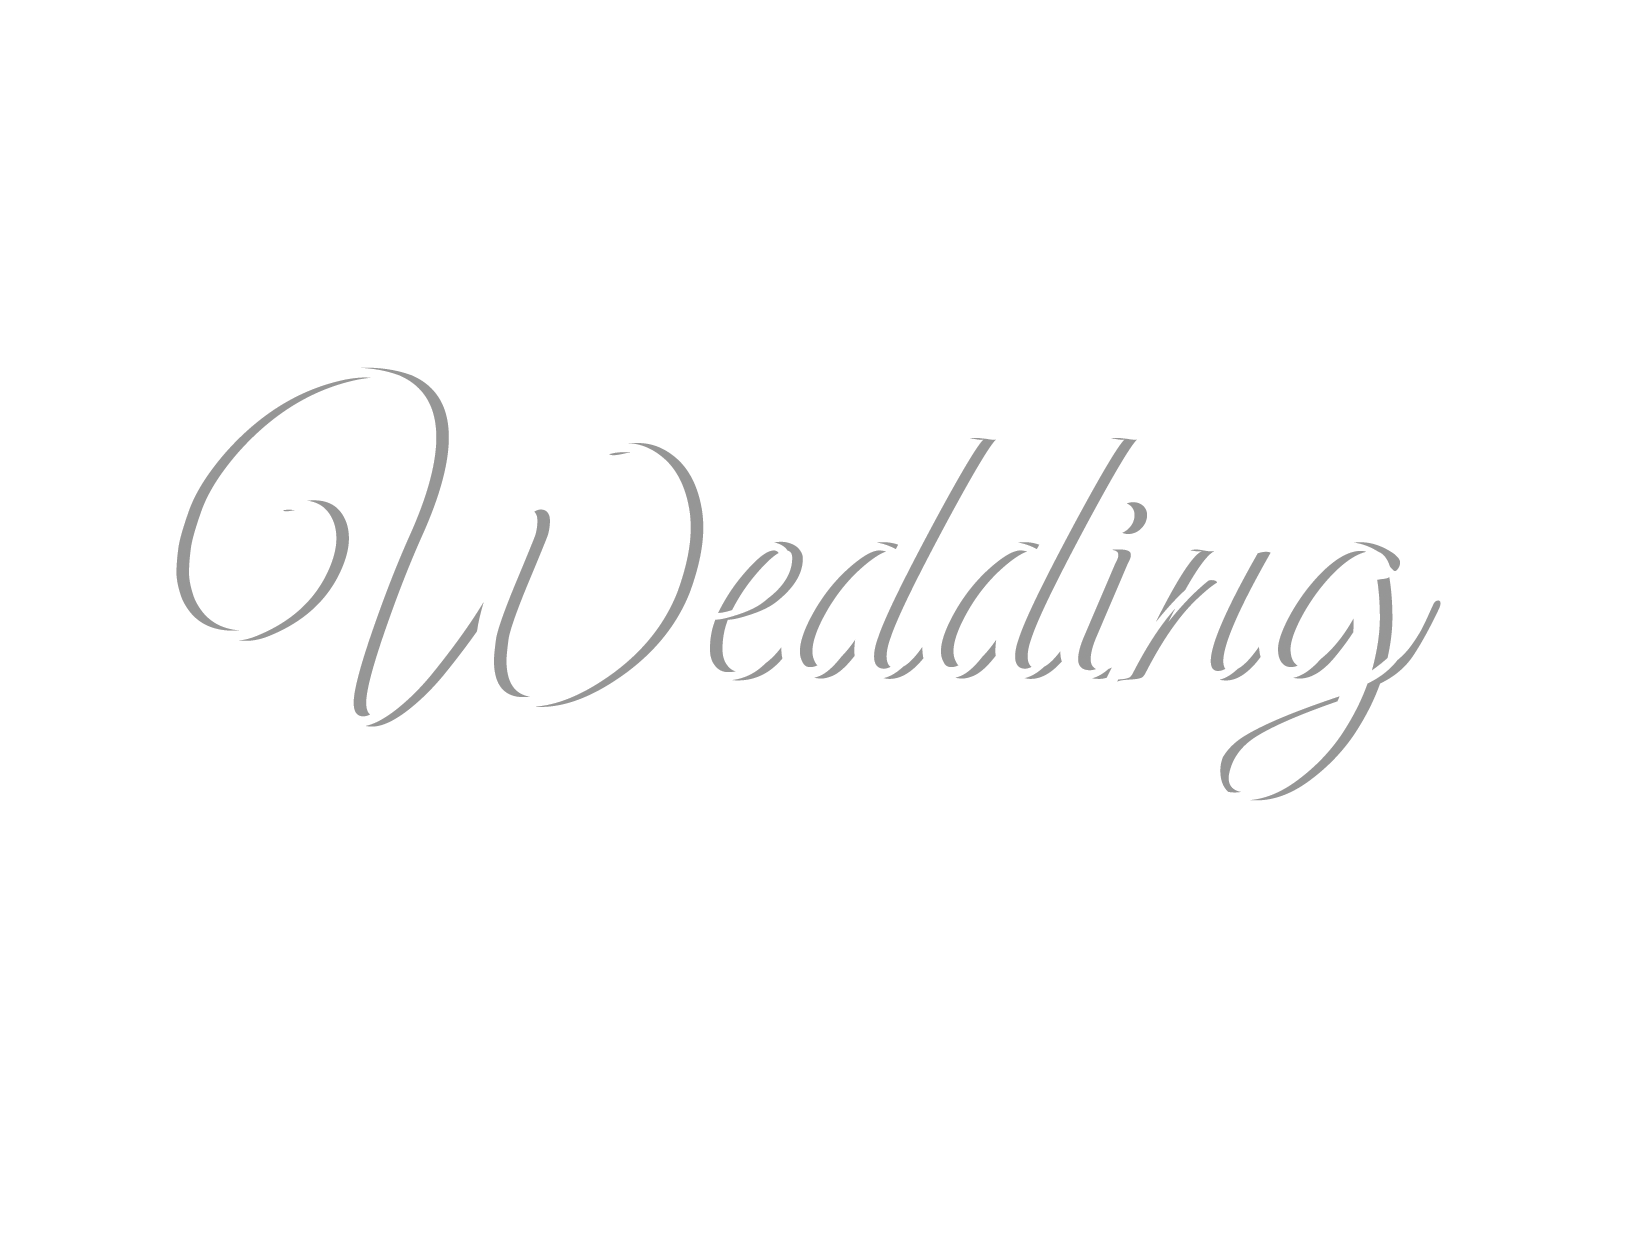 Our wedding png. The festival company organisers